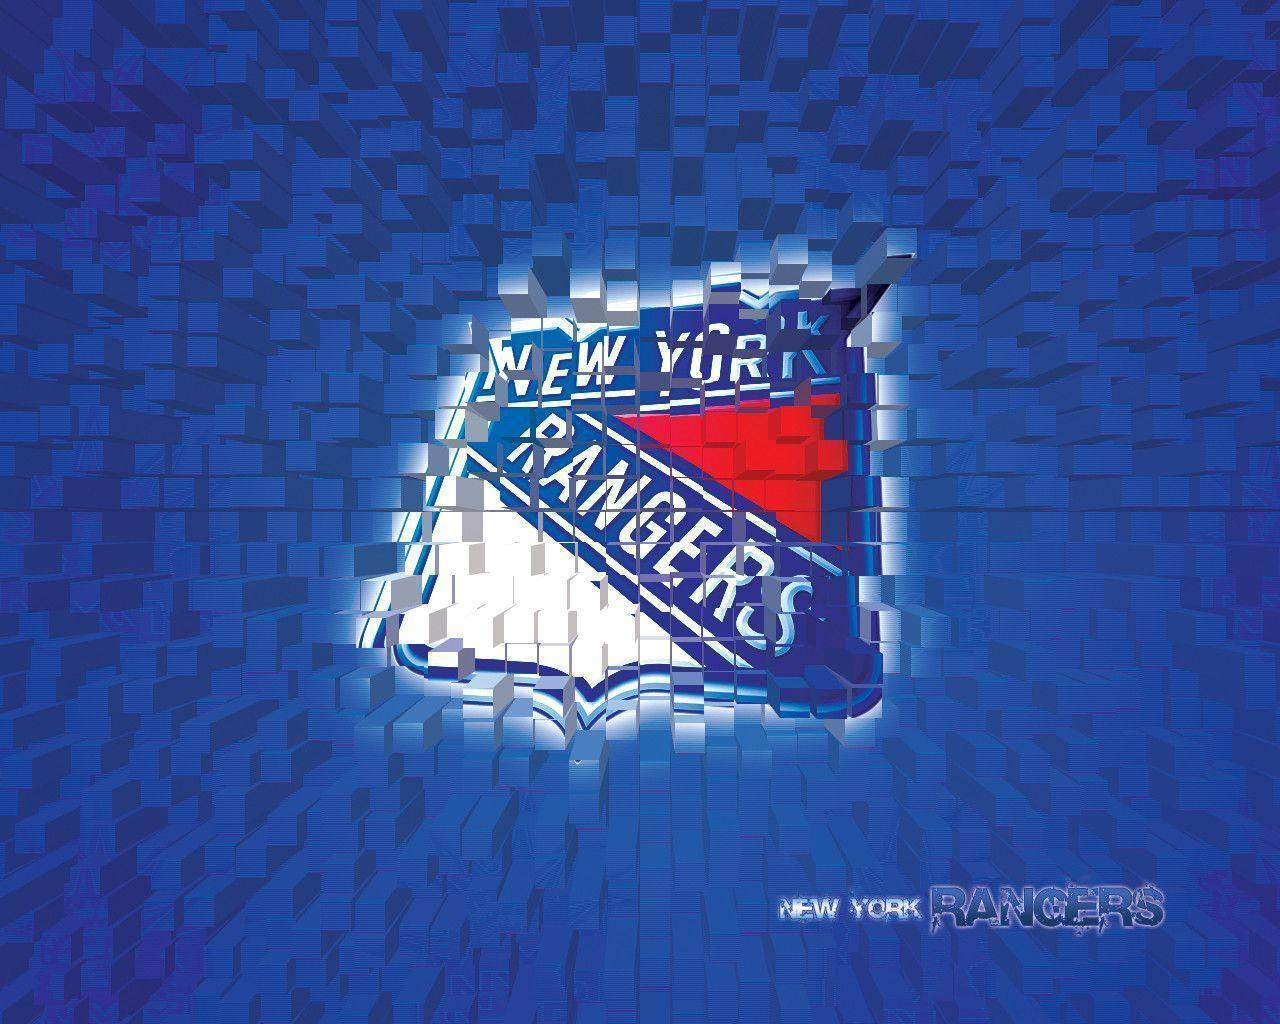 New York Rangers Iphone Wallpaper 64117 Background